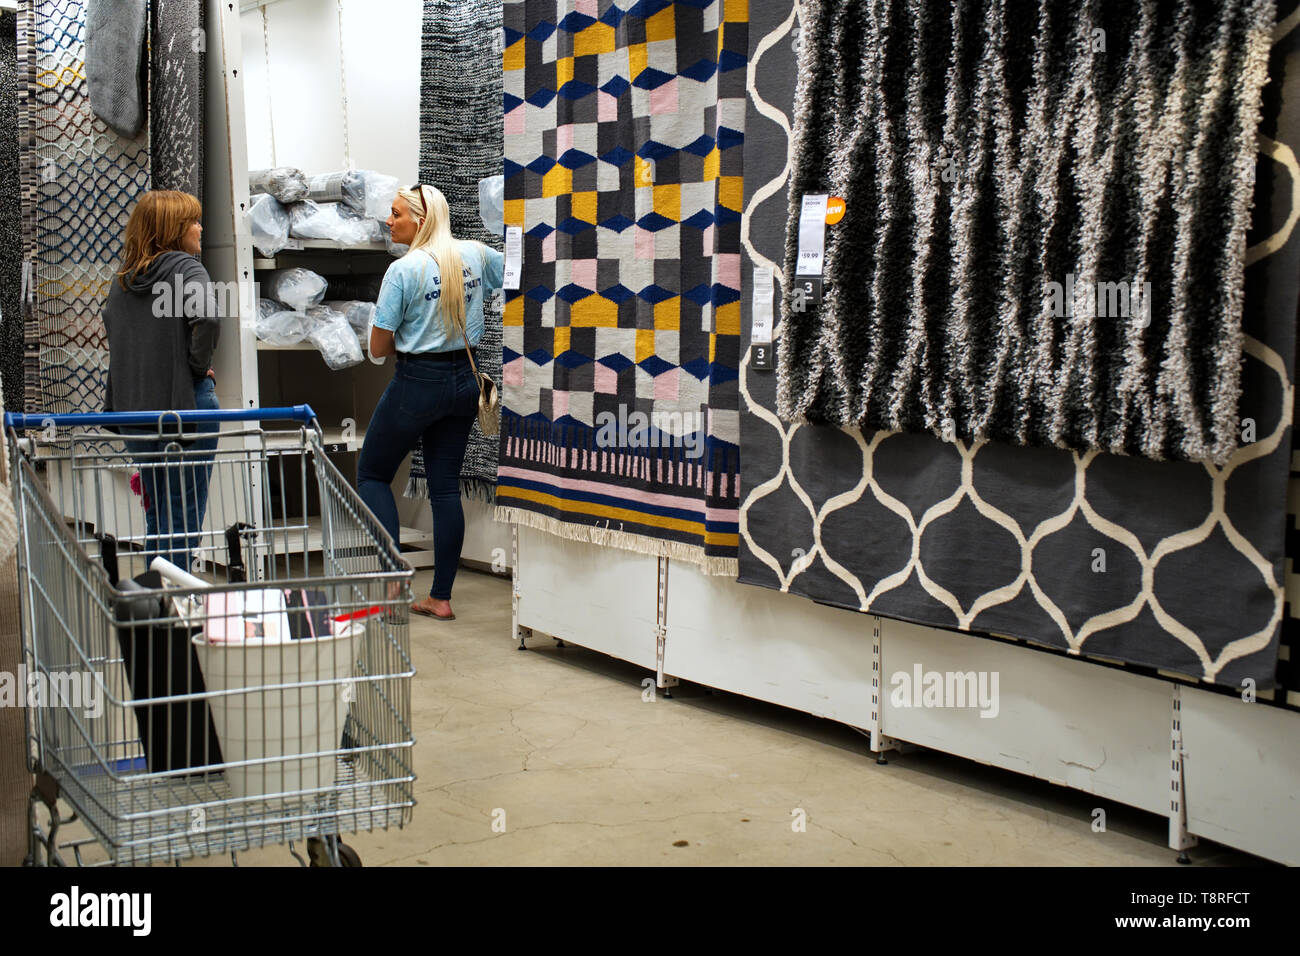 New Haven, CT USA. Sept 2018. Two women talking and shopping for designer carpets and rugs here at the world popular IKEA. - Stock Image